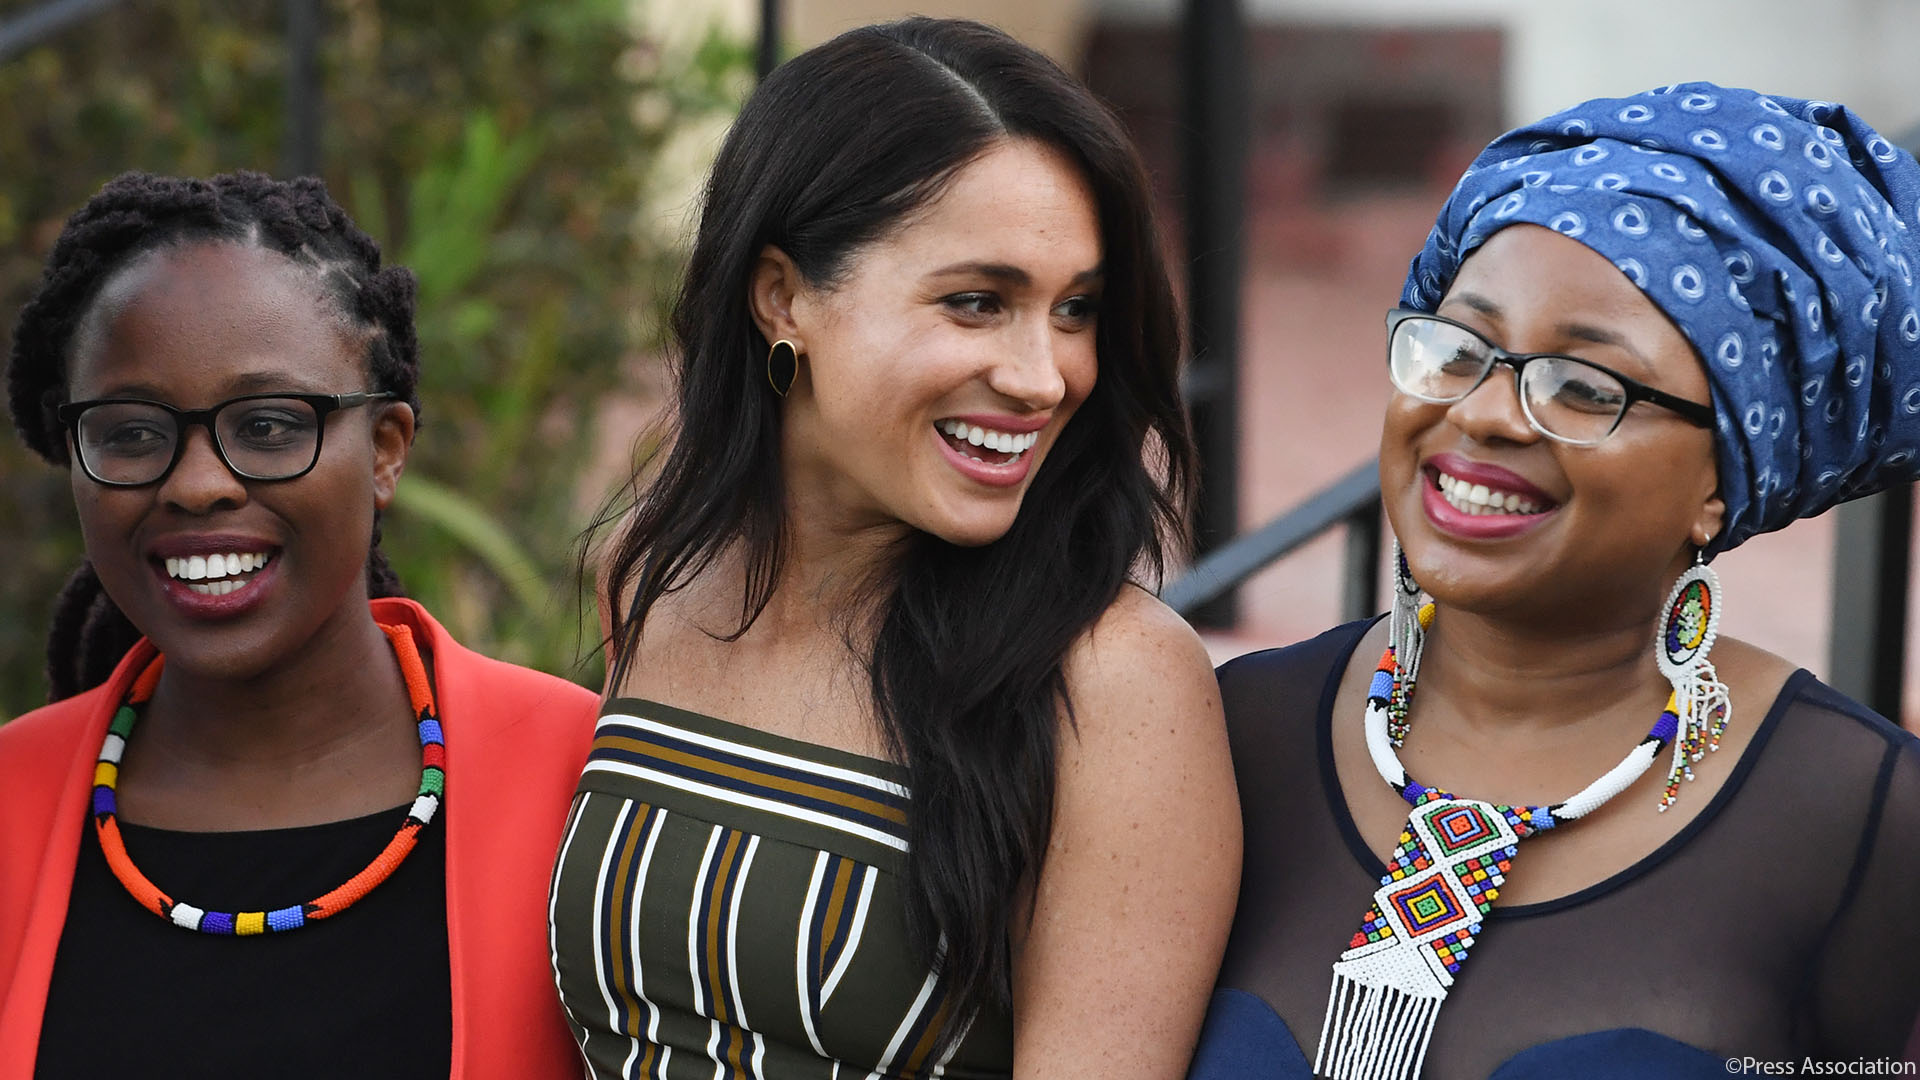 The Duke and Duchess of Sussex visit Cape Town